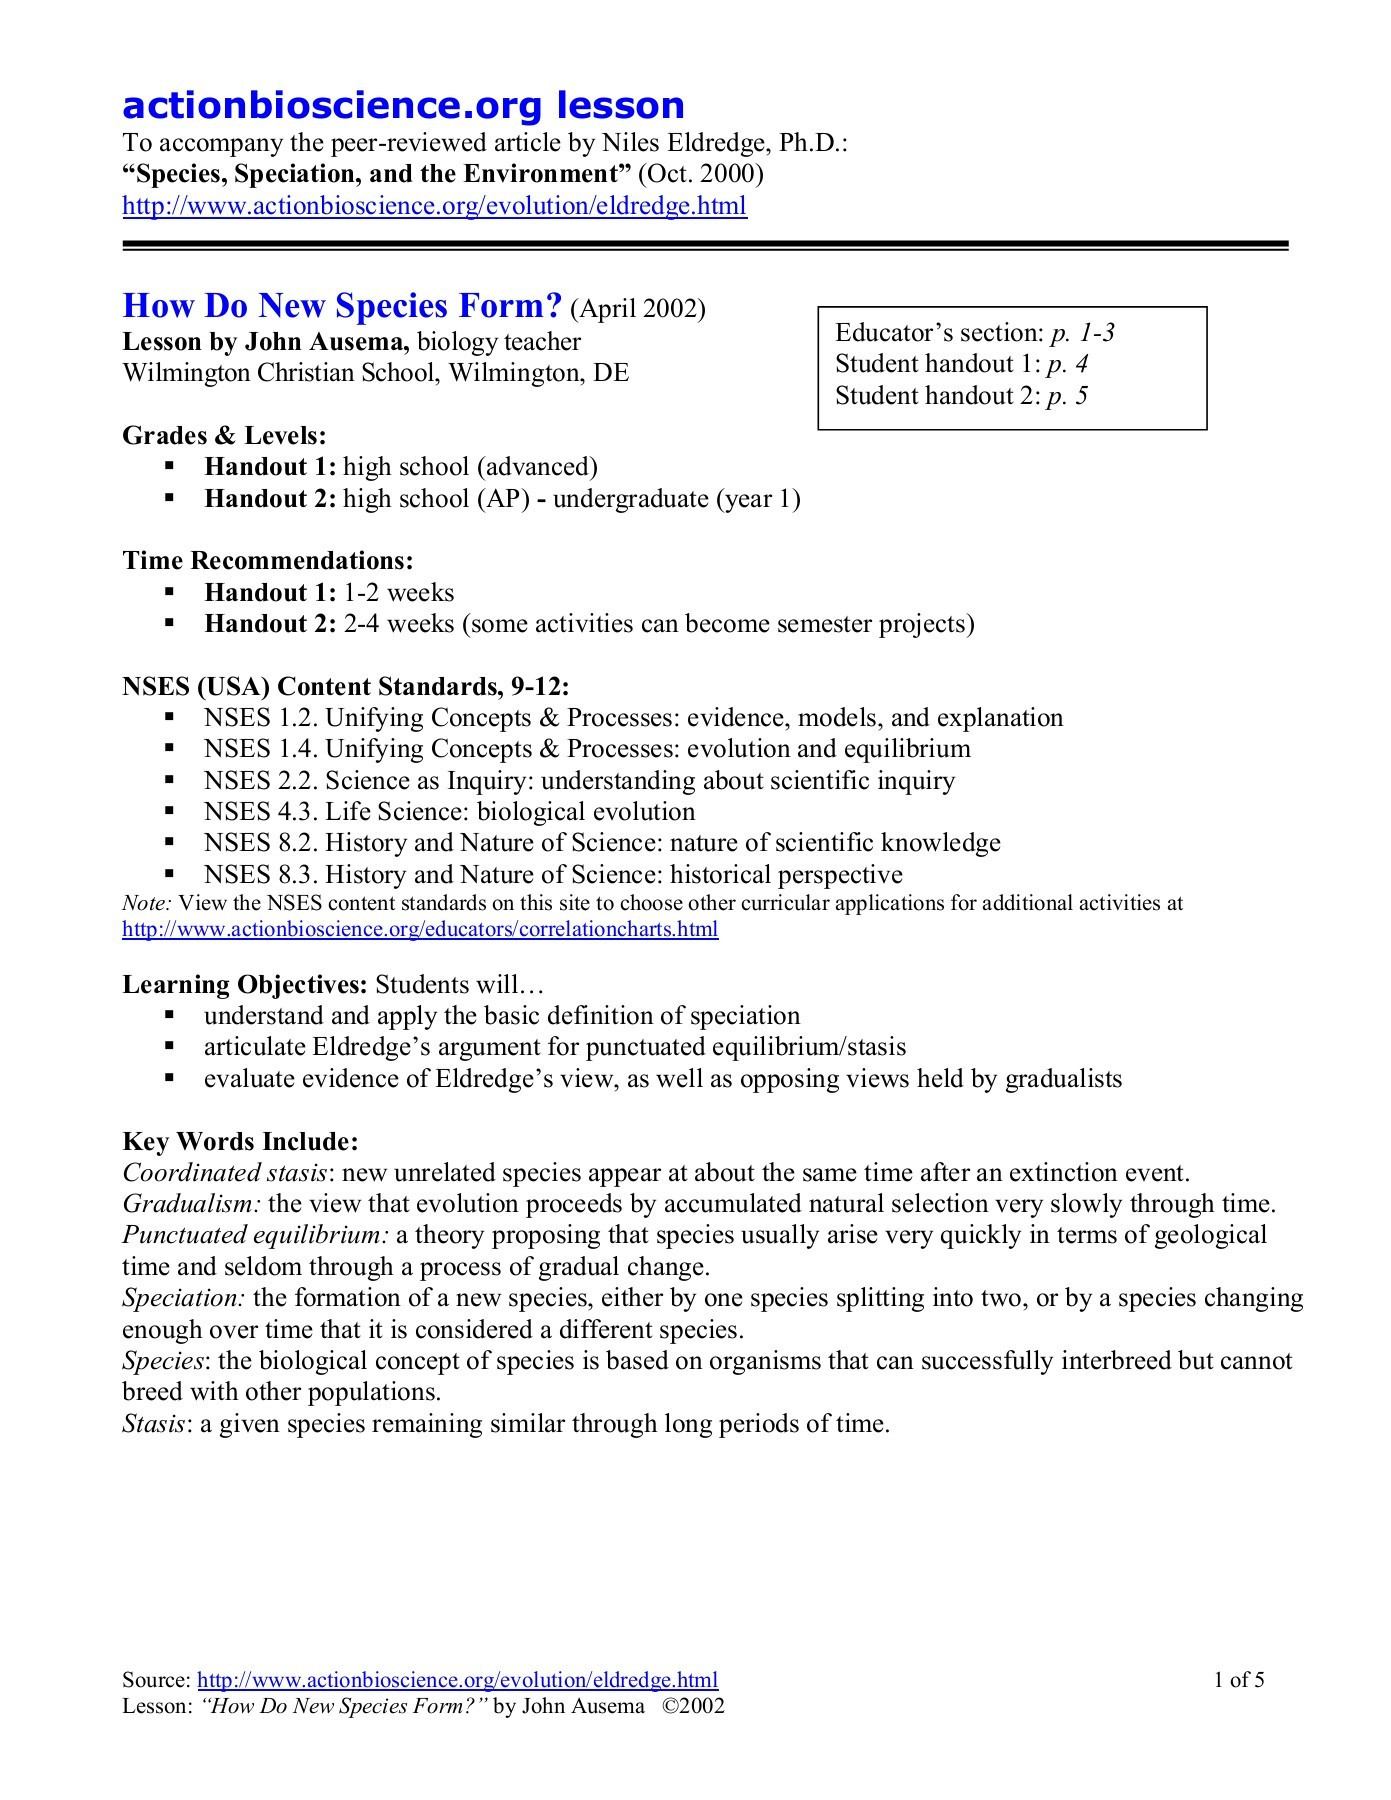 Peer Review Worksheet High School Actionbioscience Lesson How Do New Species form Pages 1